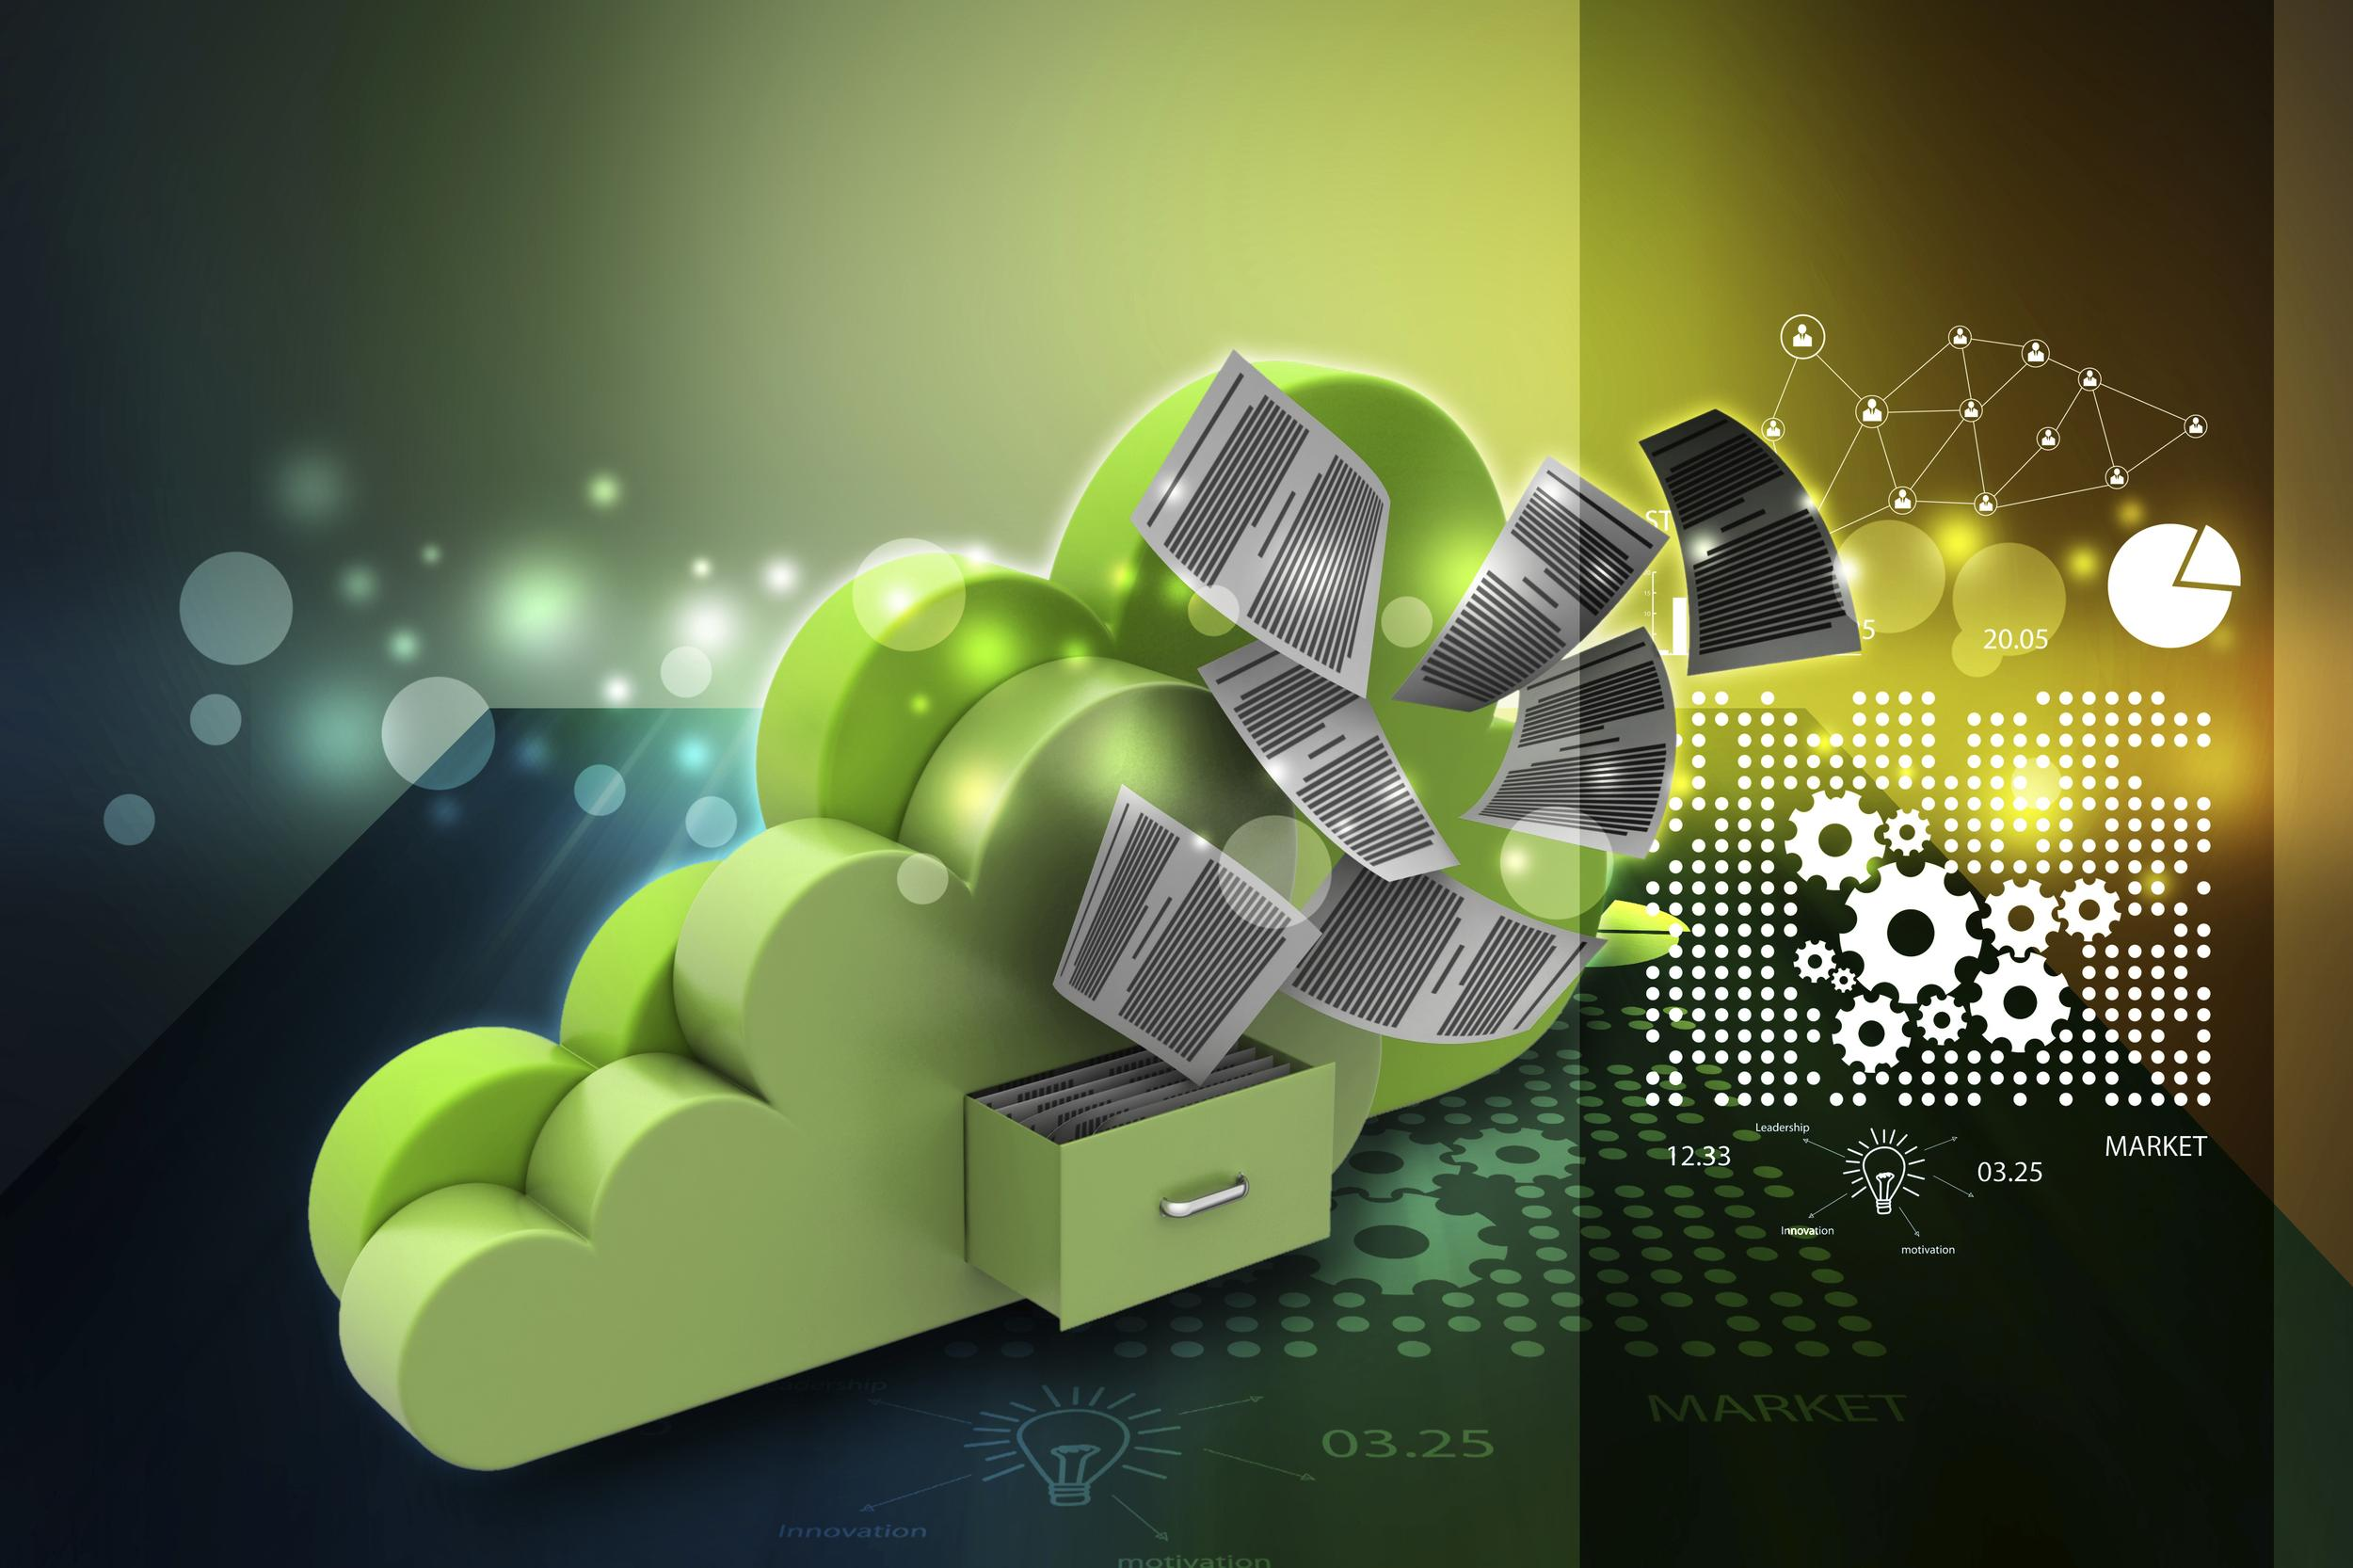 Aligning private cloud and storage: 4 considerations